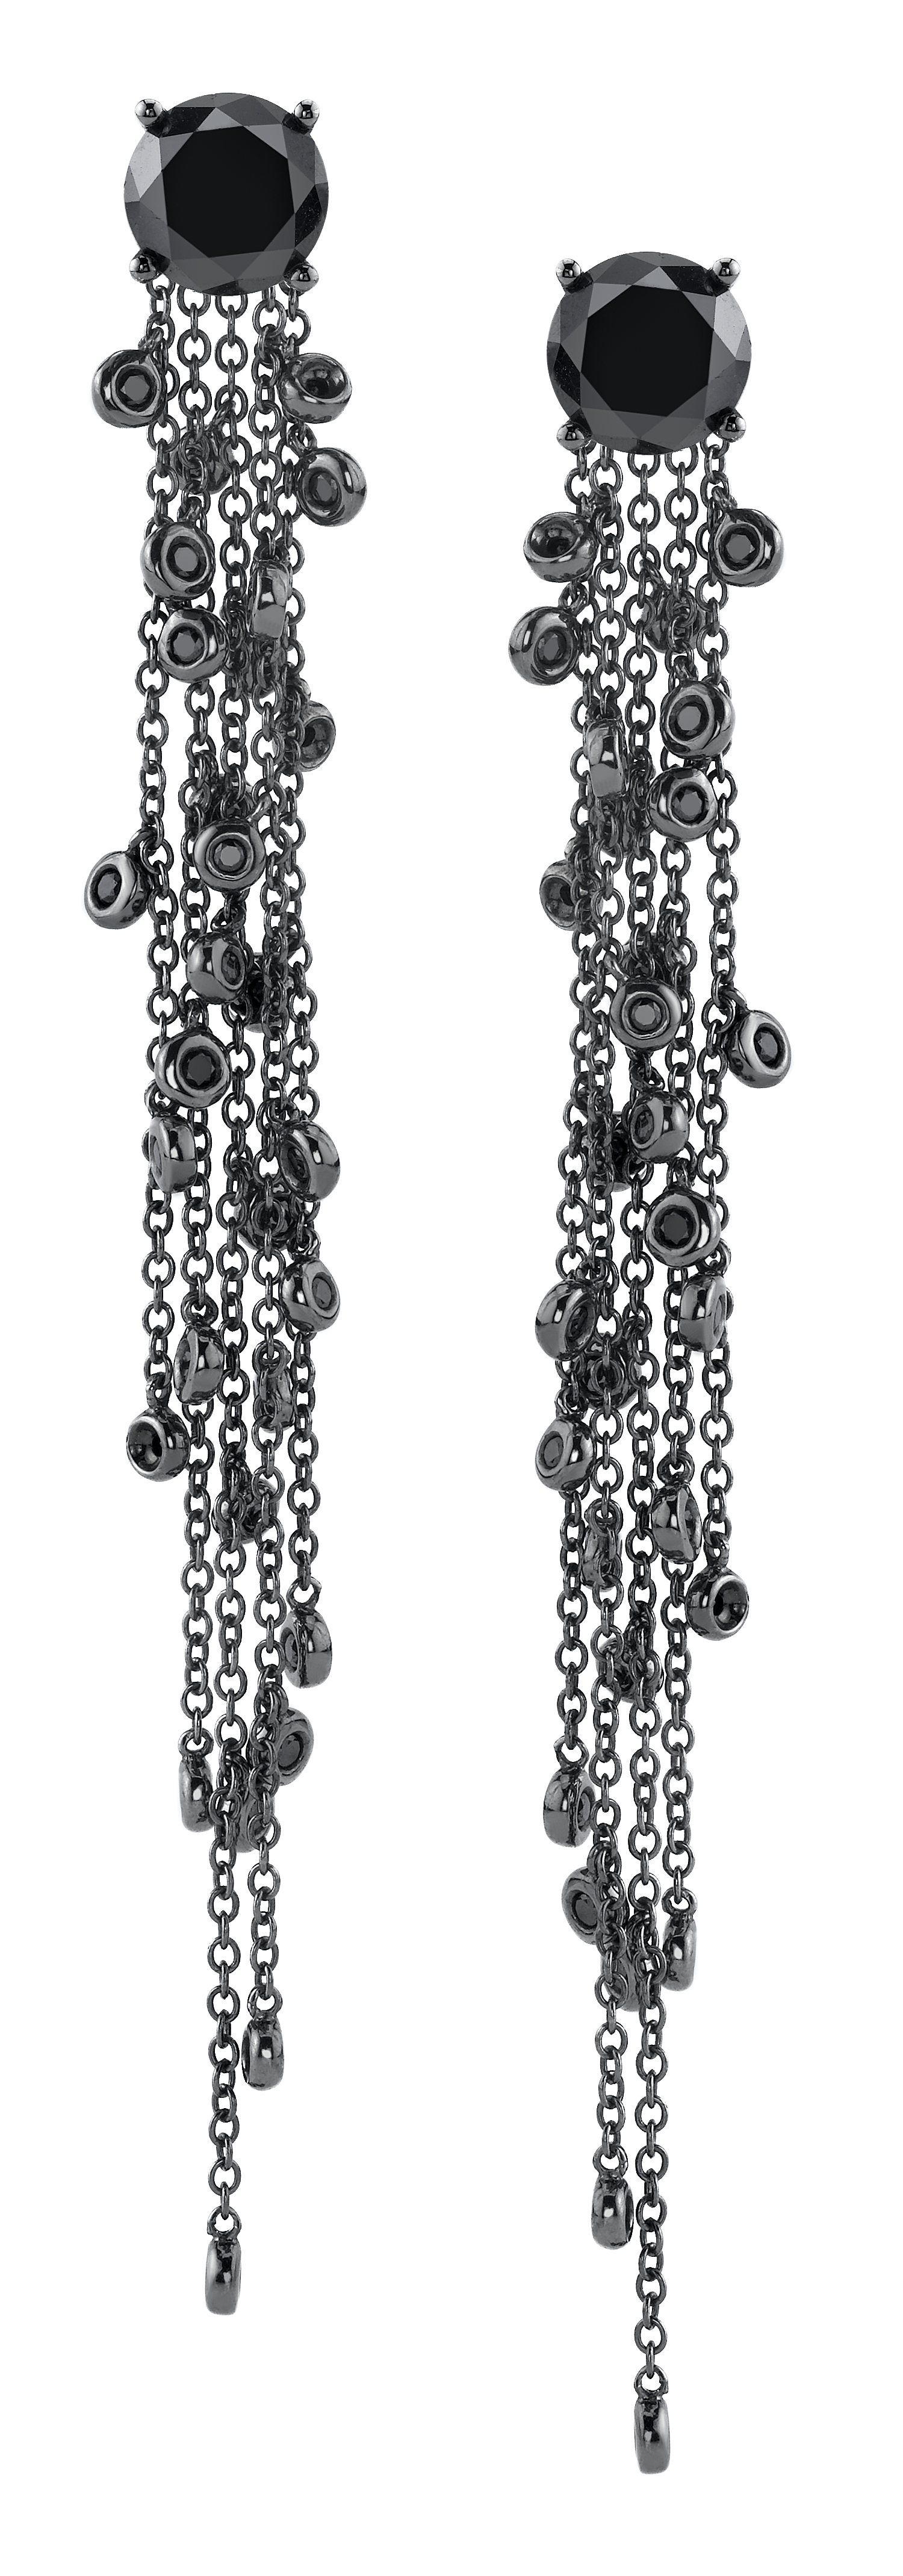 Borgioni black diamond chandelier earrings | JCK On Your Market